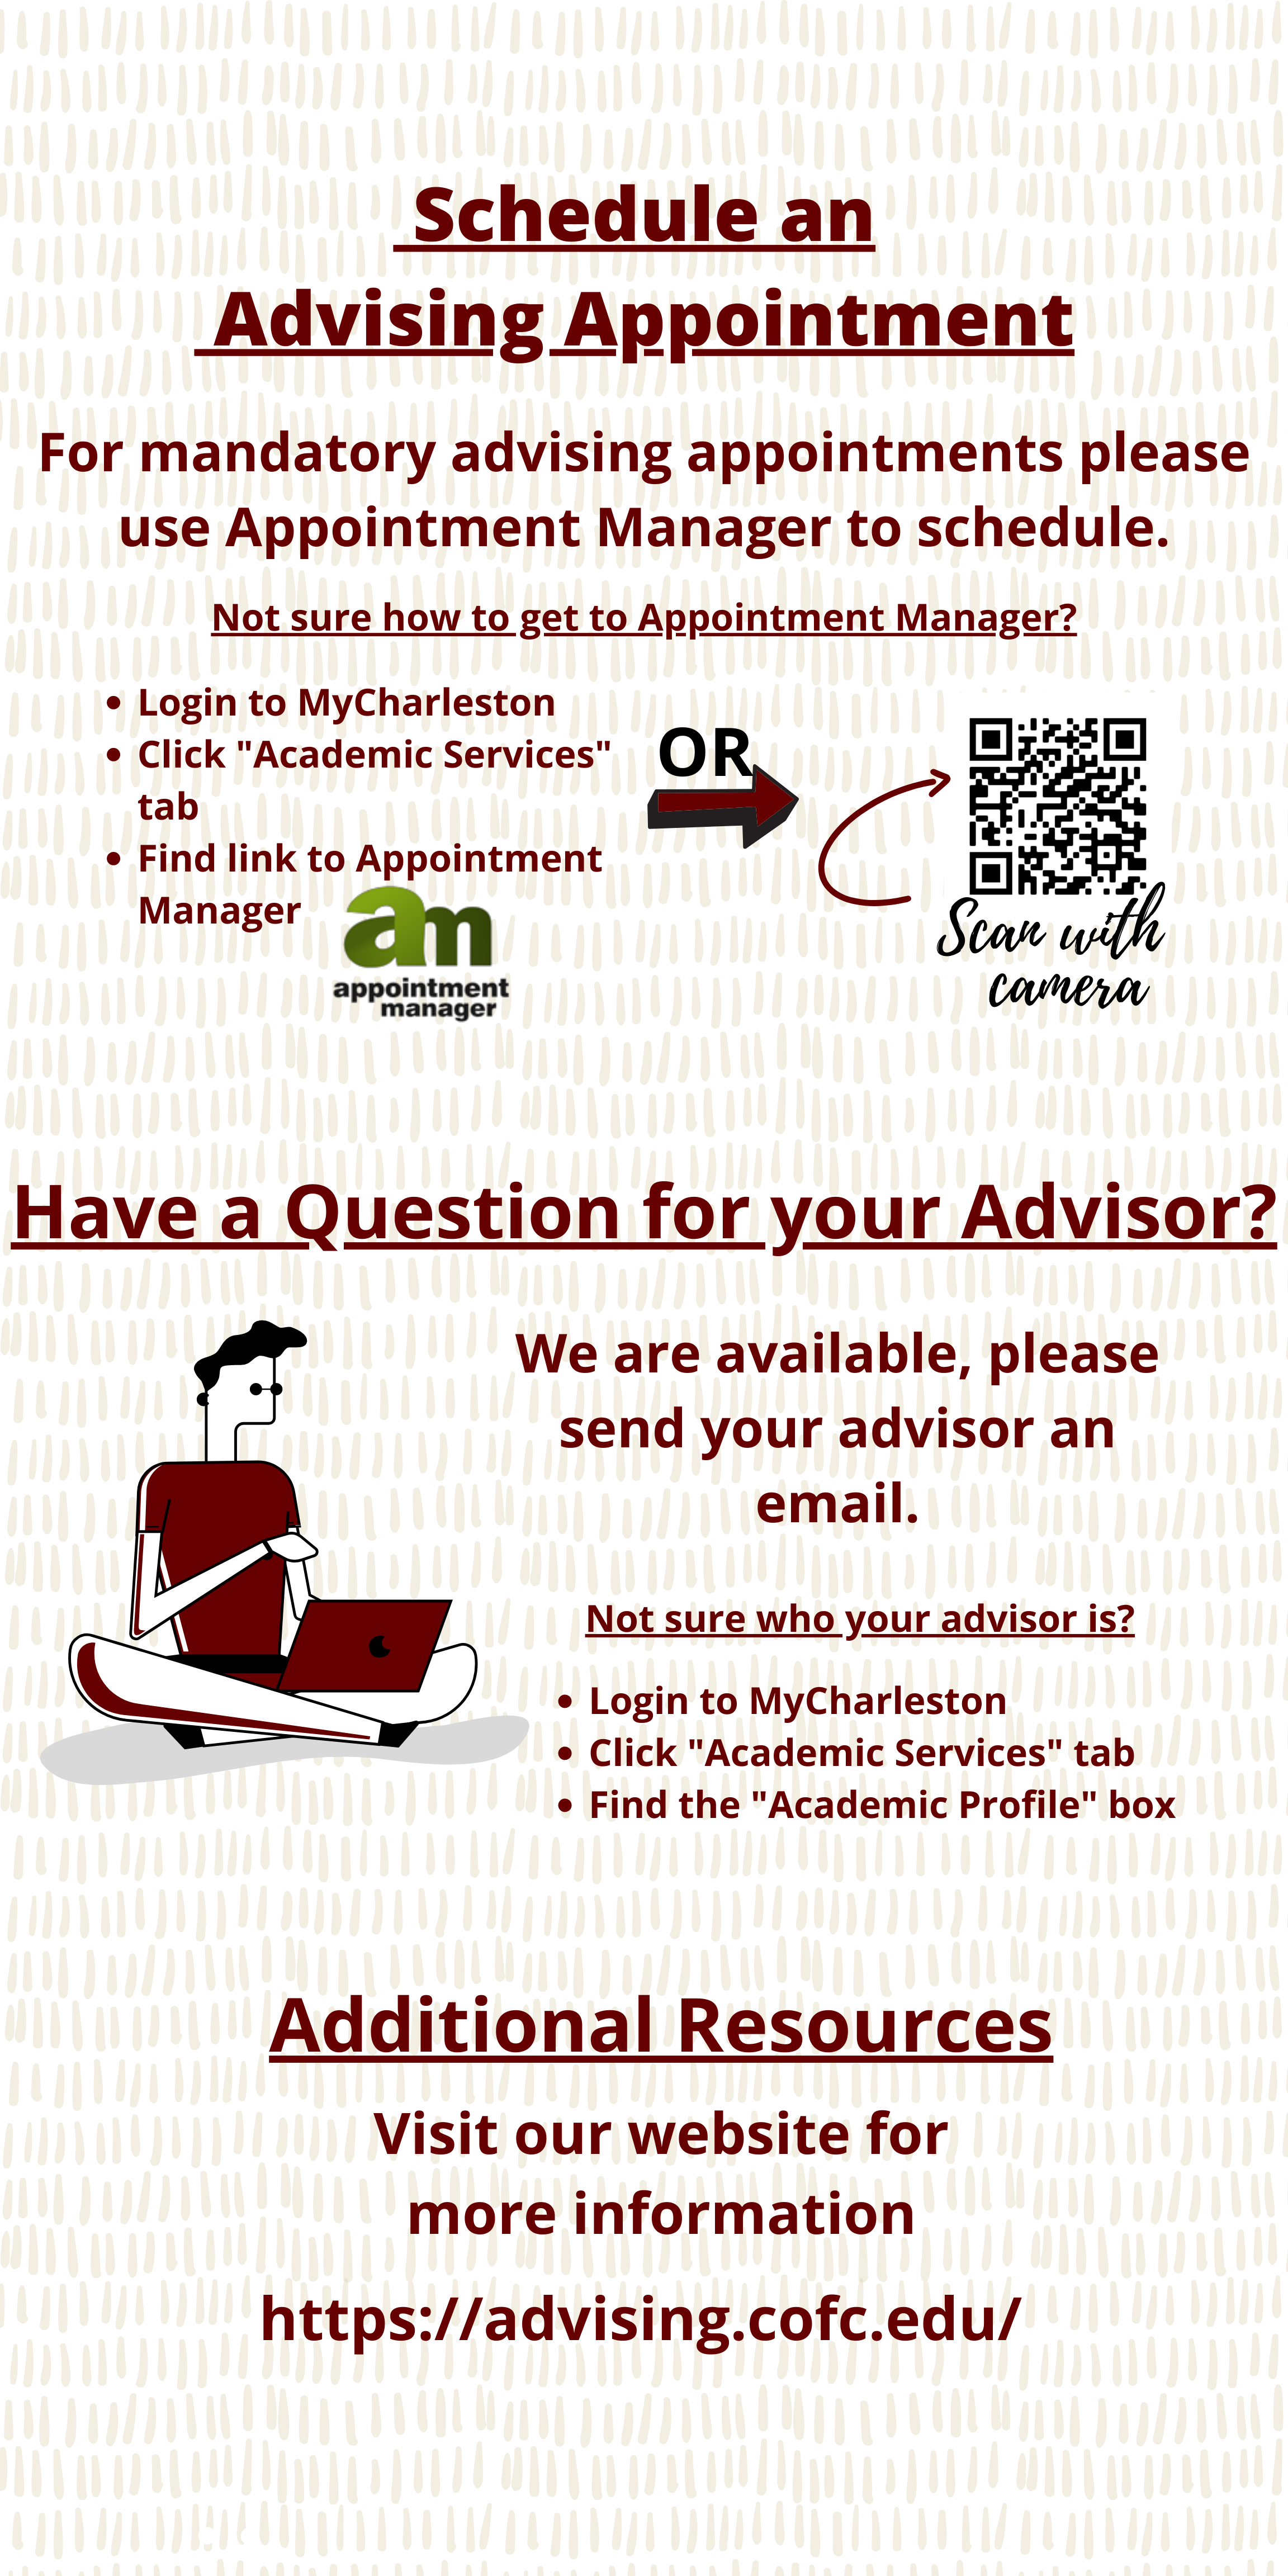 Instructions for contacting the Academic Advising and Planning Center.